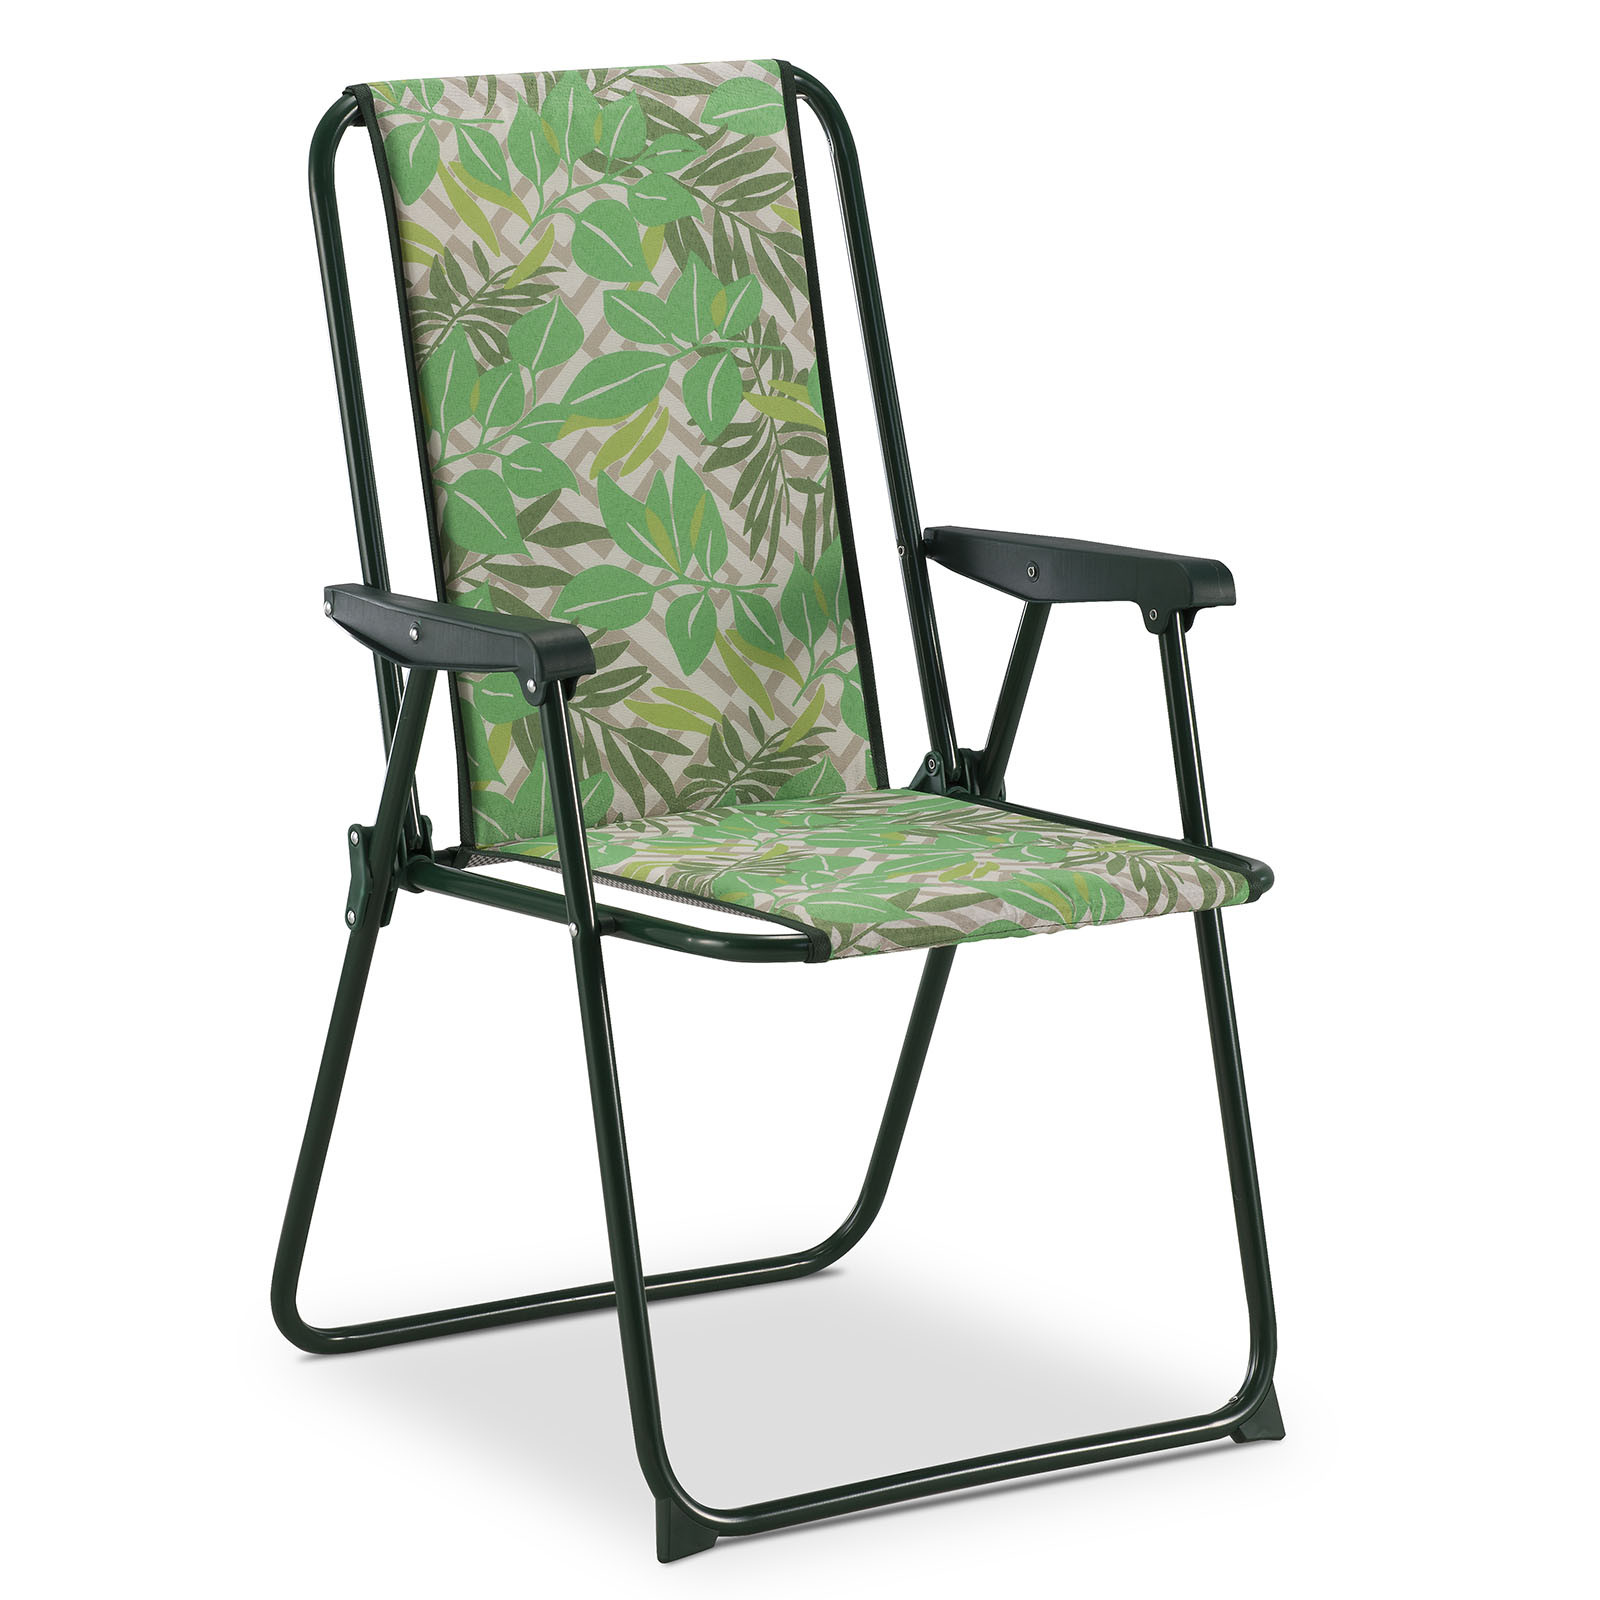 Solenny Fixed Armchair Security Padded 2 Cm High Back-50001001155151-